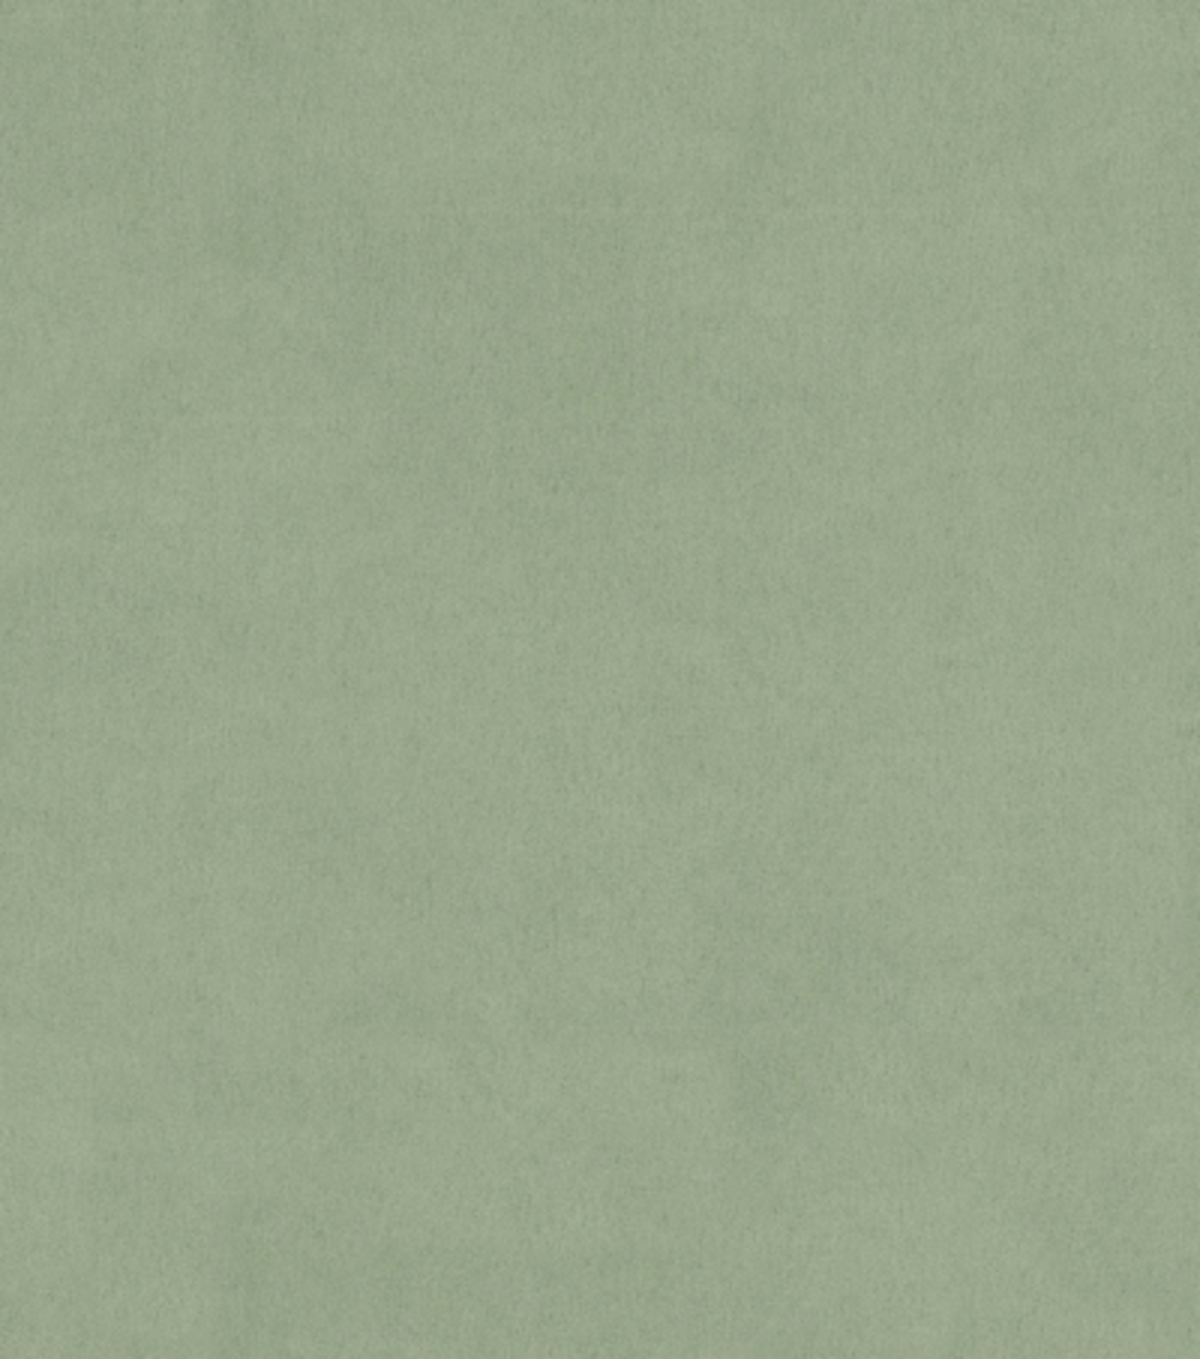 Home Decor 8\u0022x8\u0022 Fabric Swatch-Richloom Sig Series Chateau Mist